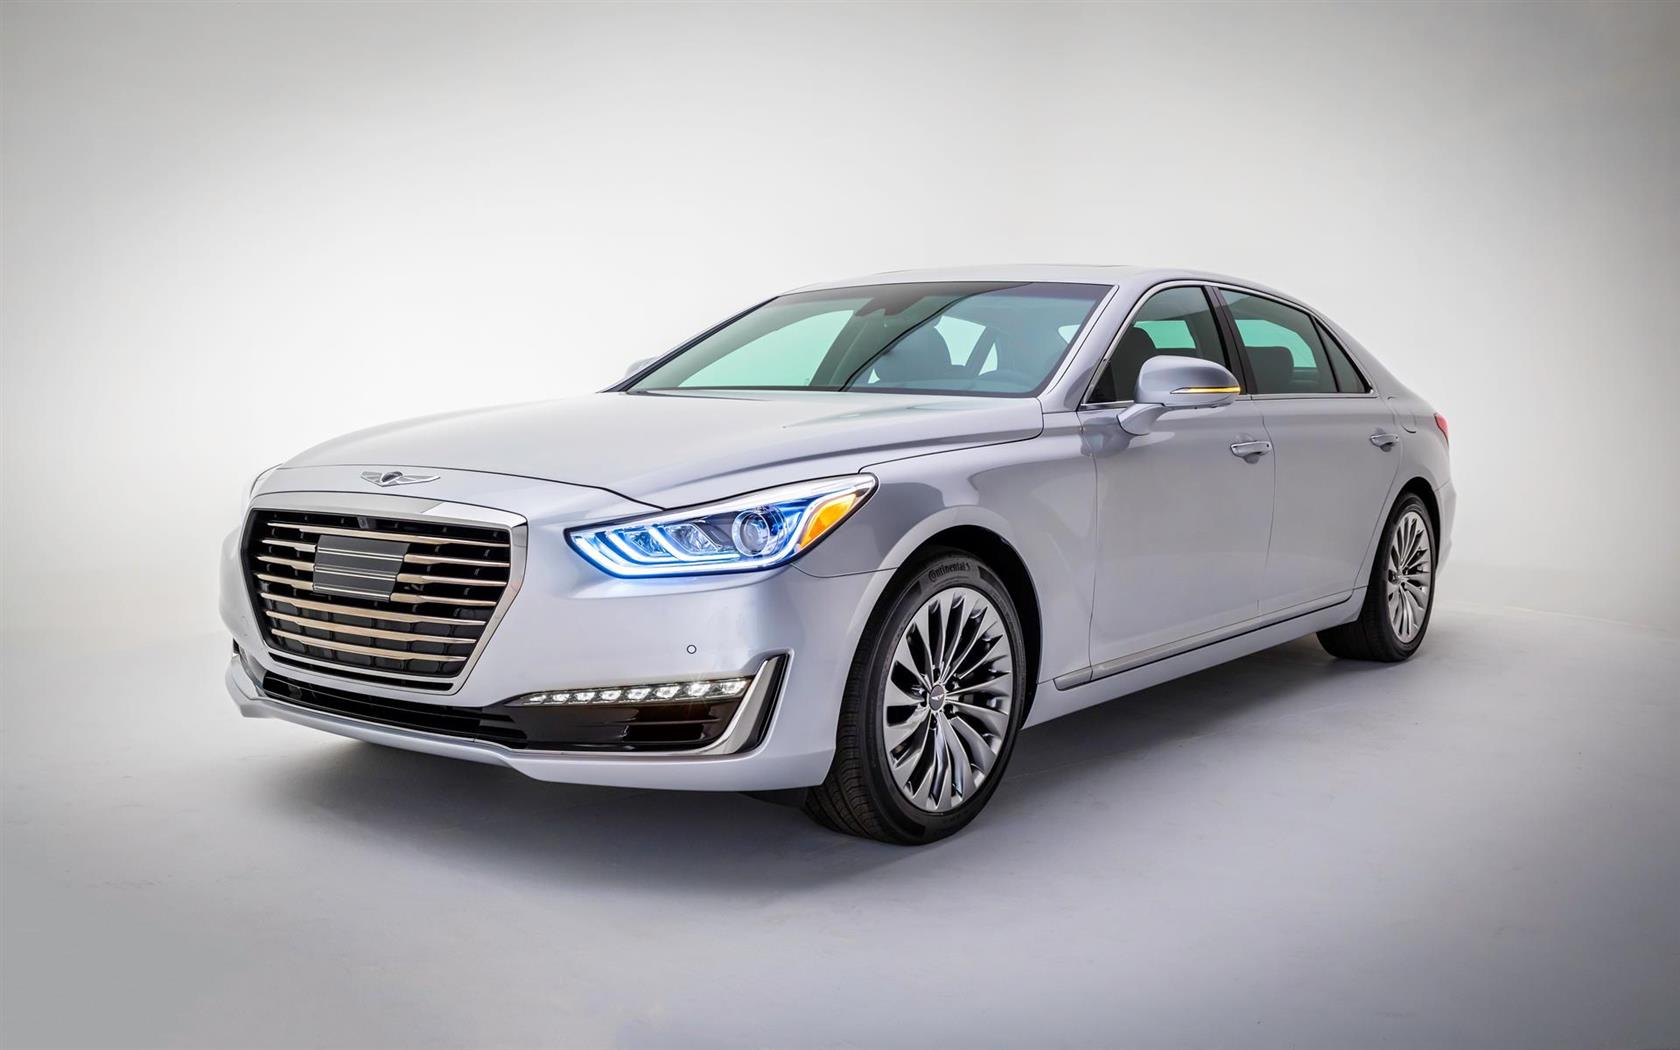 2017 hyundai genesis g90 images photo 2017 hyundai genesis g90 image 043. Black Bedroom Furniture Sets. Home Design Ideas